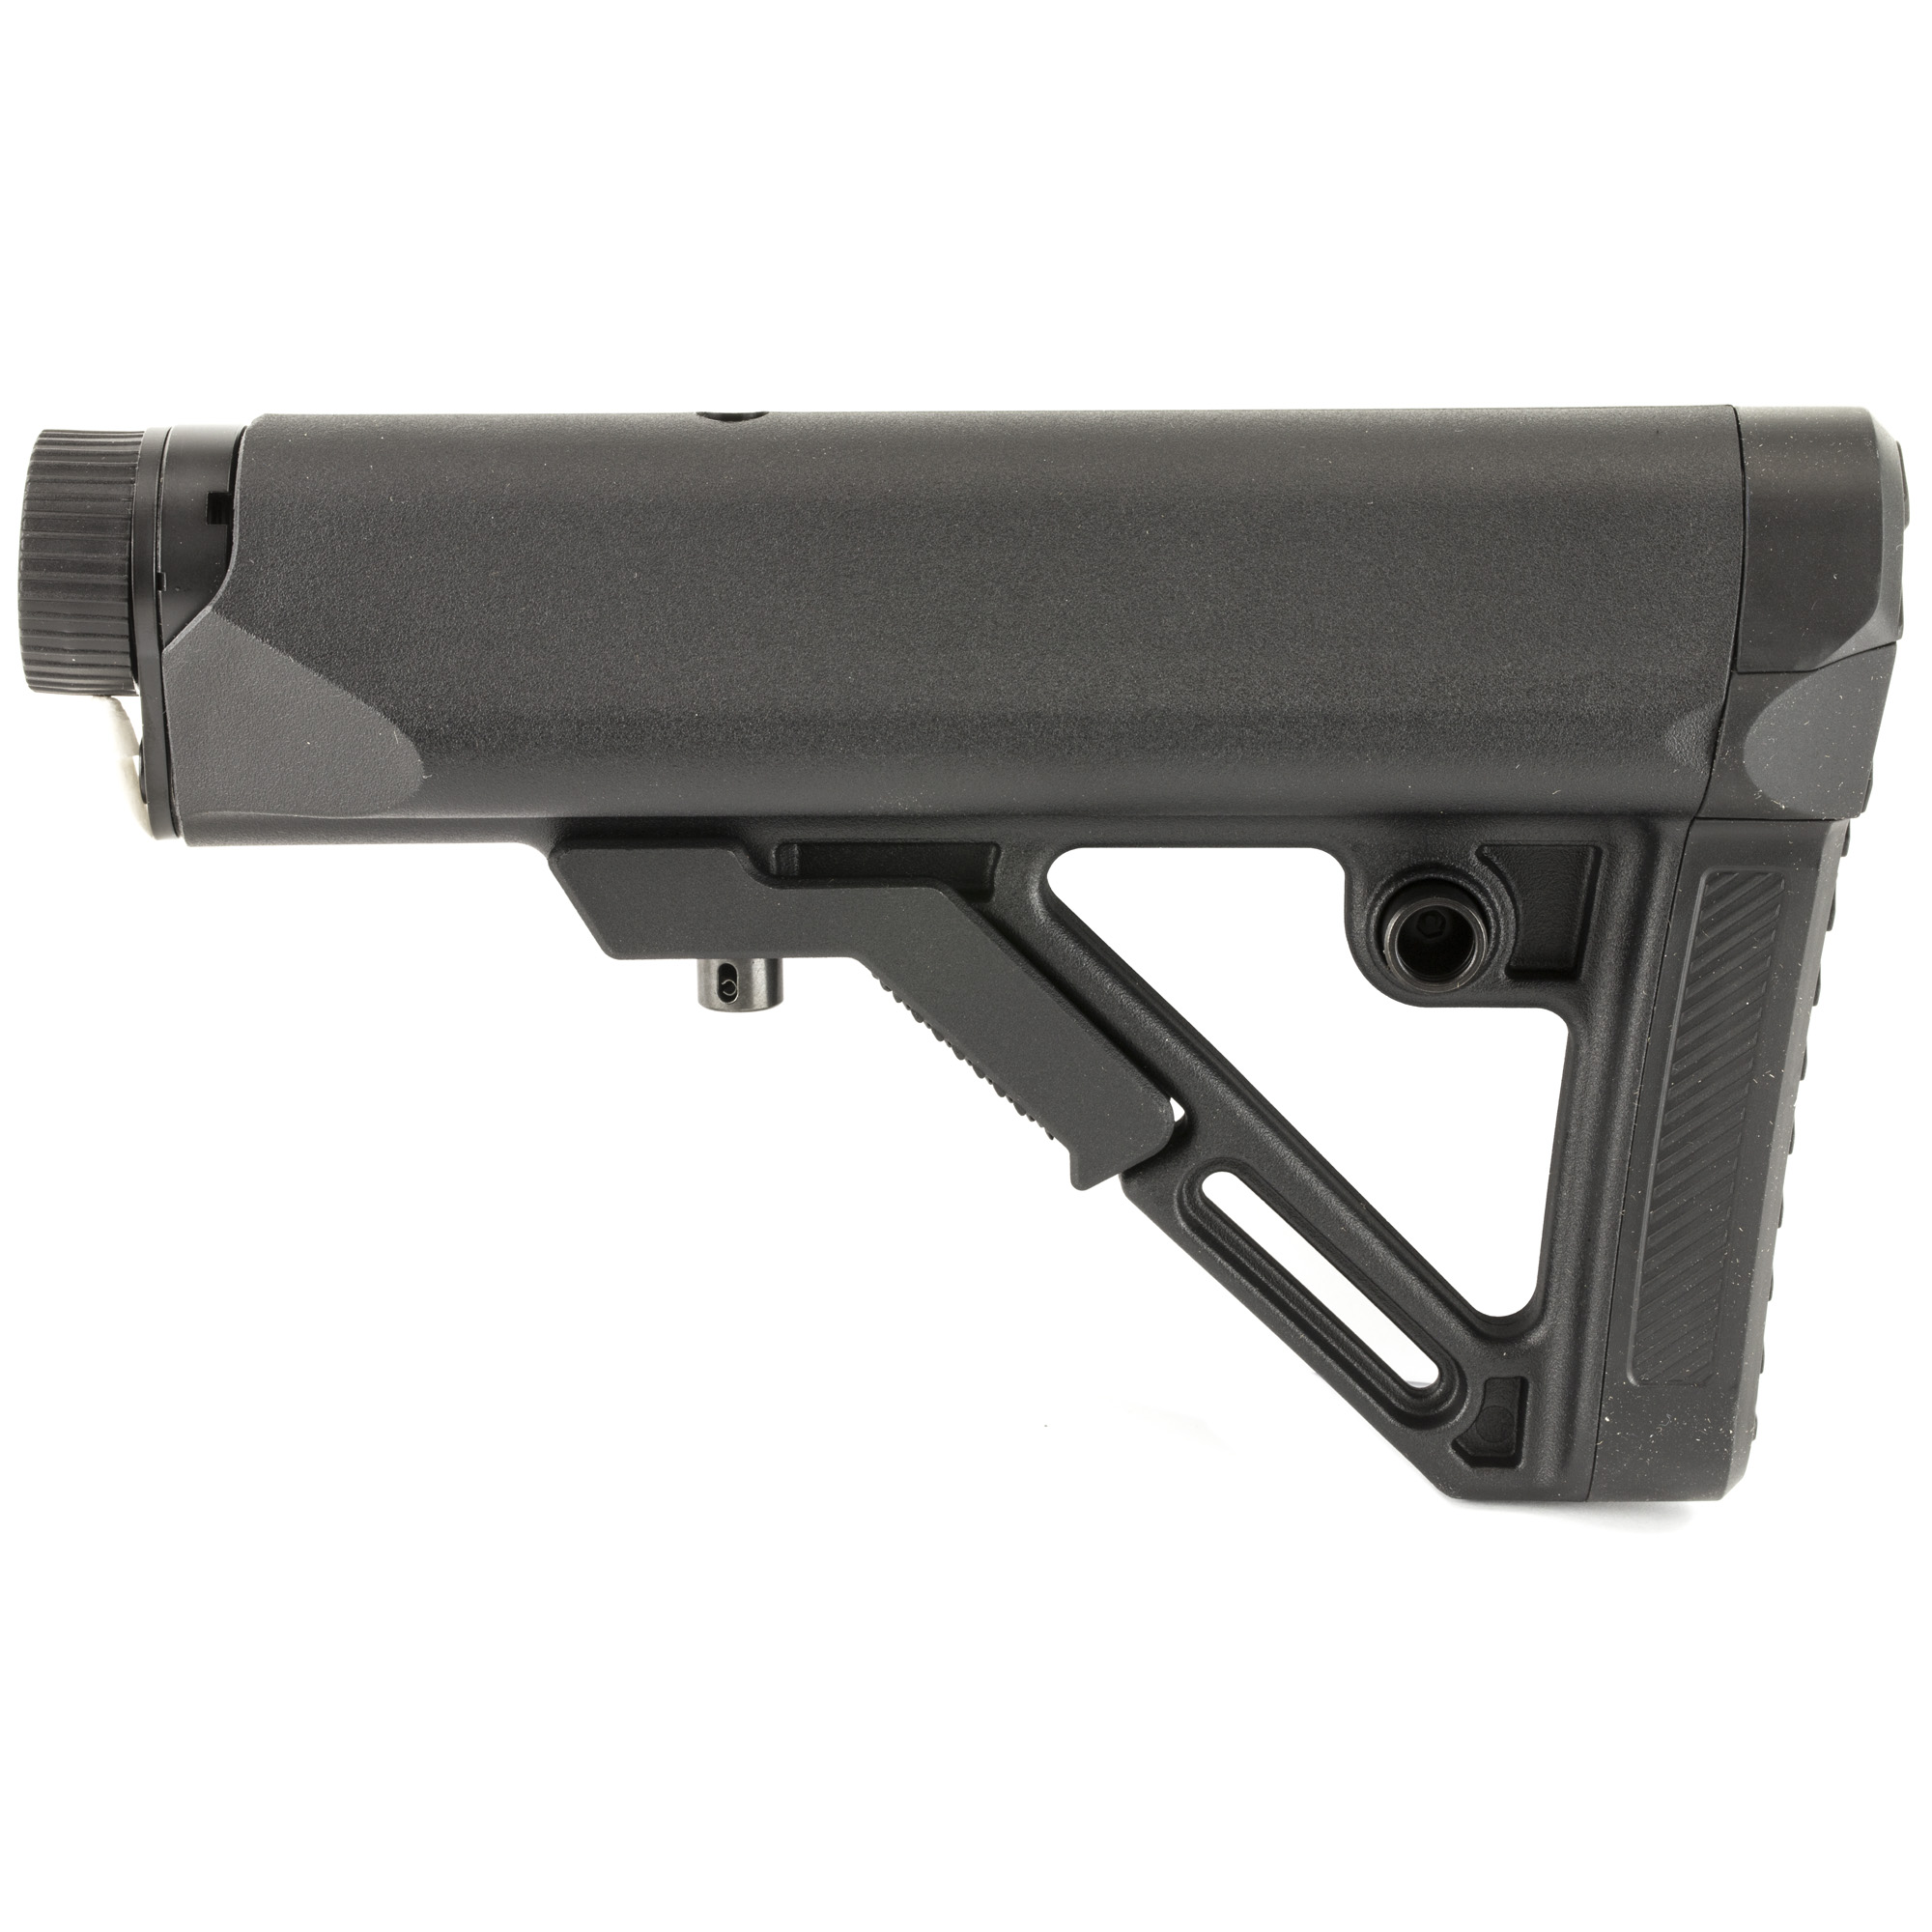 """The UTG PRO Model4 Combat Ops S1 Mil-Spec Butt Stock Kit is a collapsible"""" AR-15/M4 style stock constructed of weather proof and rugged high impact polymer. This six-position stock is designed for heavy duty operations and is made with the tightest tolerances for the most secure fit and silent performance. The rolled threads on the mil-spec buffer tube provide a precision fit for a rock solid mount. It has a thick rubberized recoil pad"""" reversible Quick Detach sling swivel housing"""" and an ambidextrous sling loop attachment. Chamfered edges and slanted cheek rest provide the comfort you're looking for. Upgrade your AR-15 platform rifle with the Model4 Combat Ops S1 Mil-Spec Butt Stock Kit from Leapers UTG."""